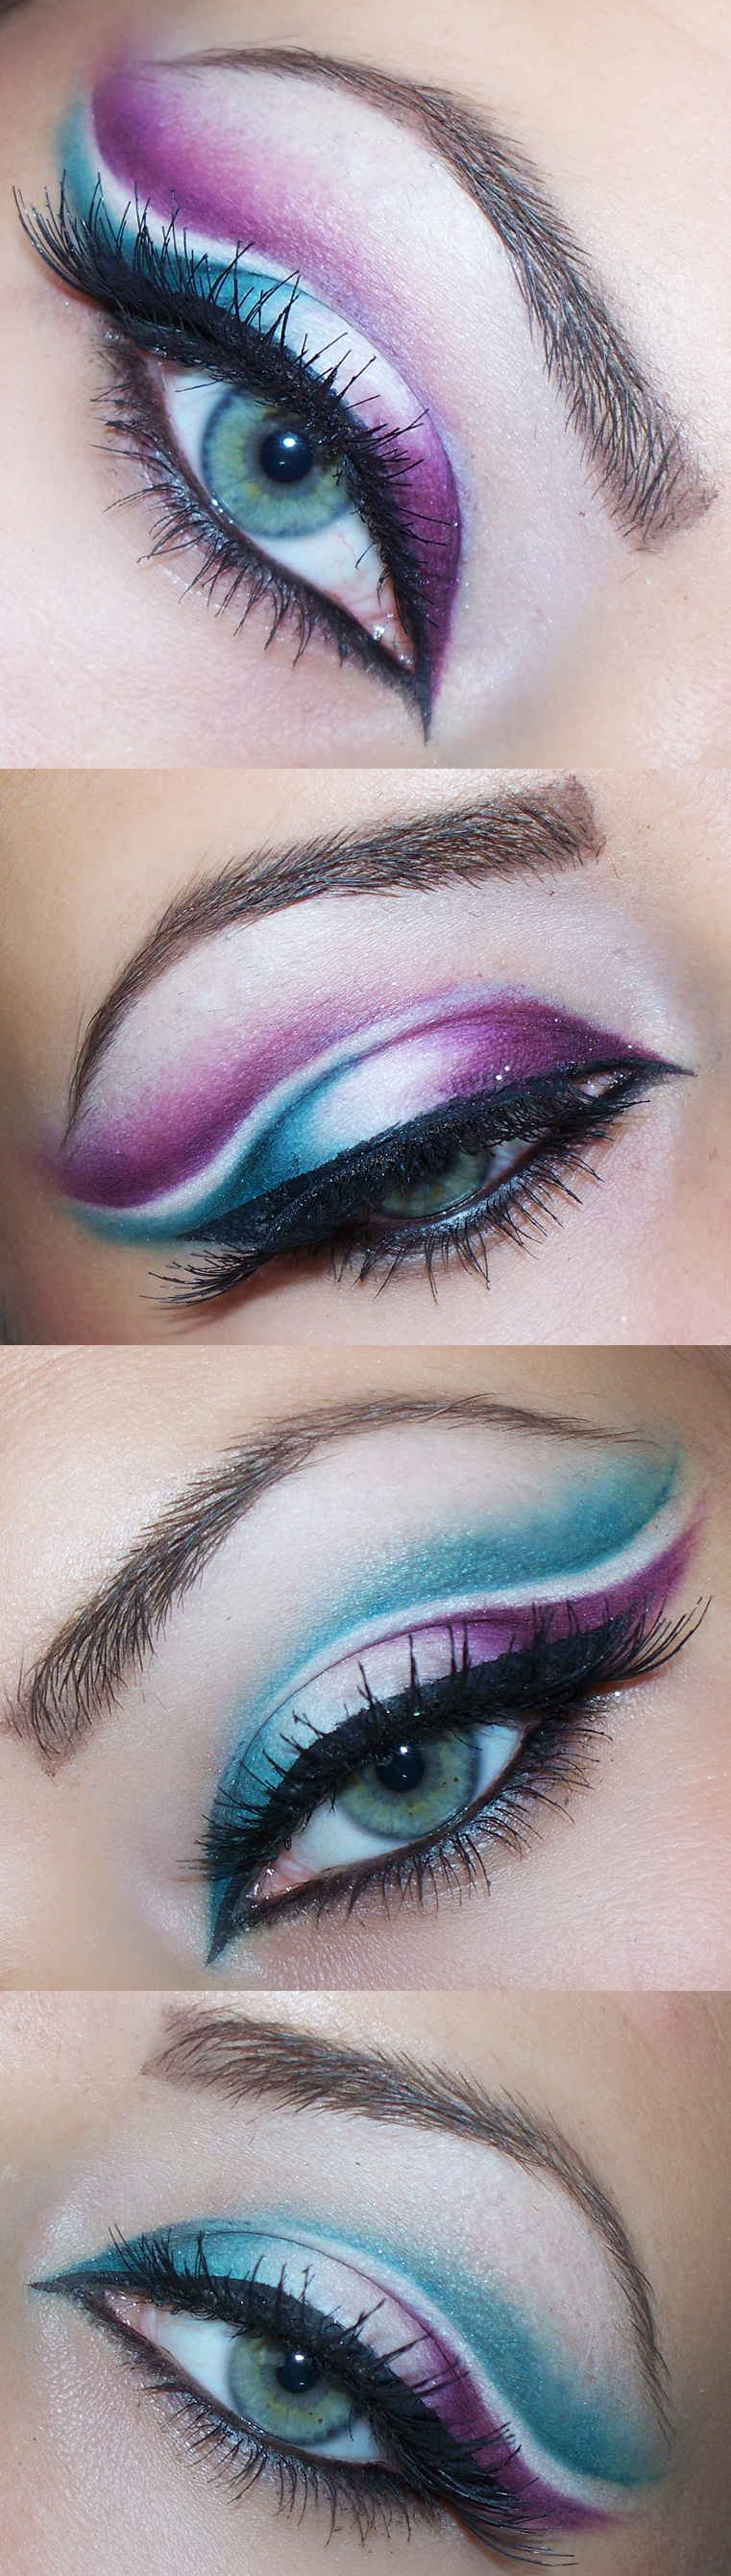 Best Eye Makeup Ideas for Blue Eyes: Purple and Blue